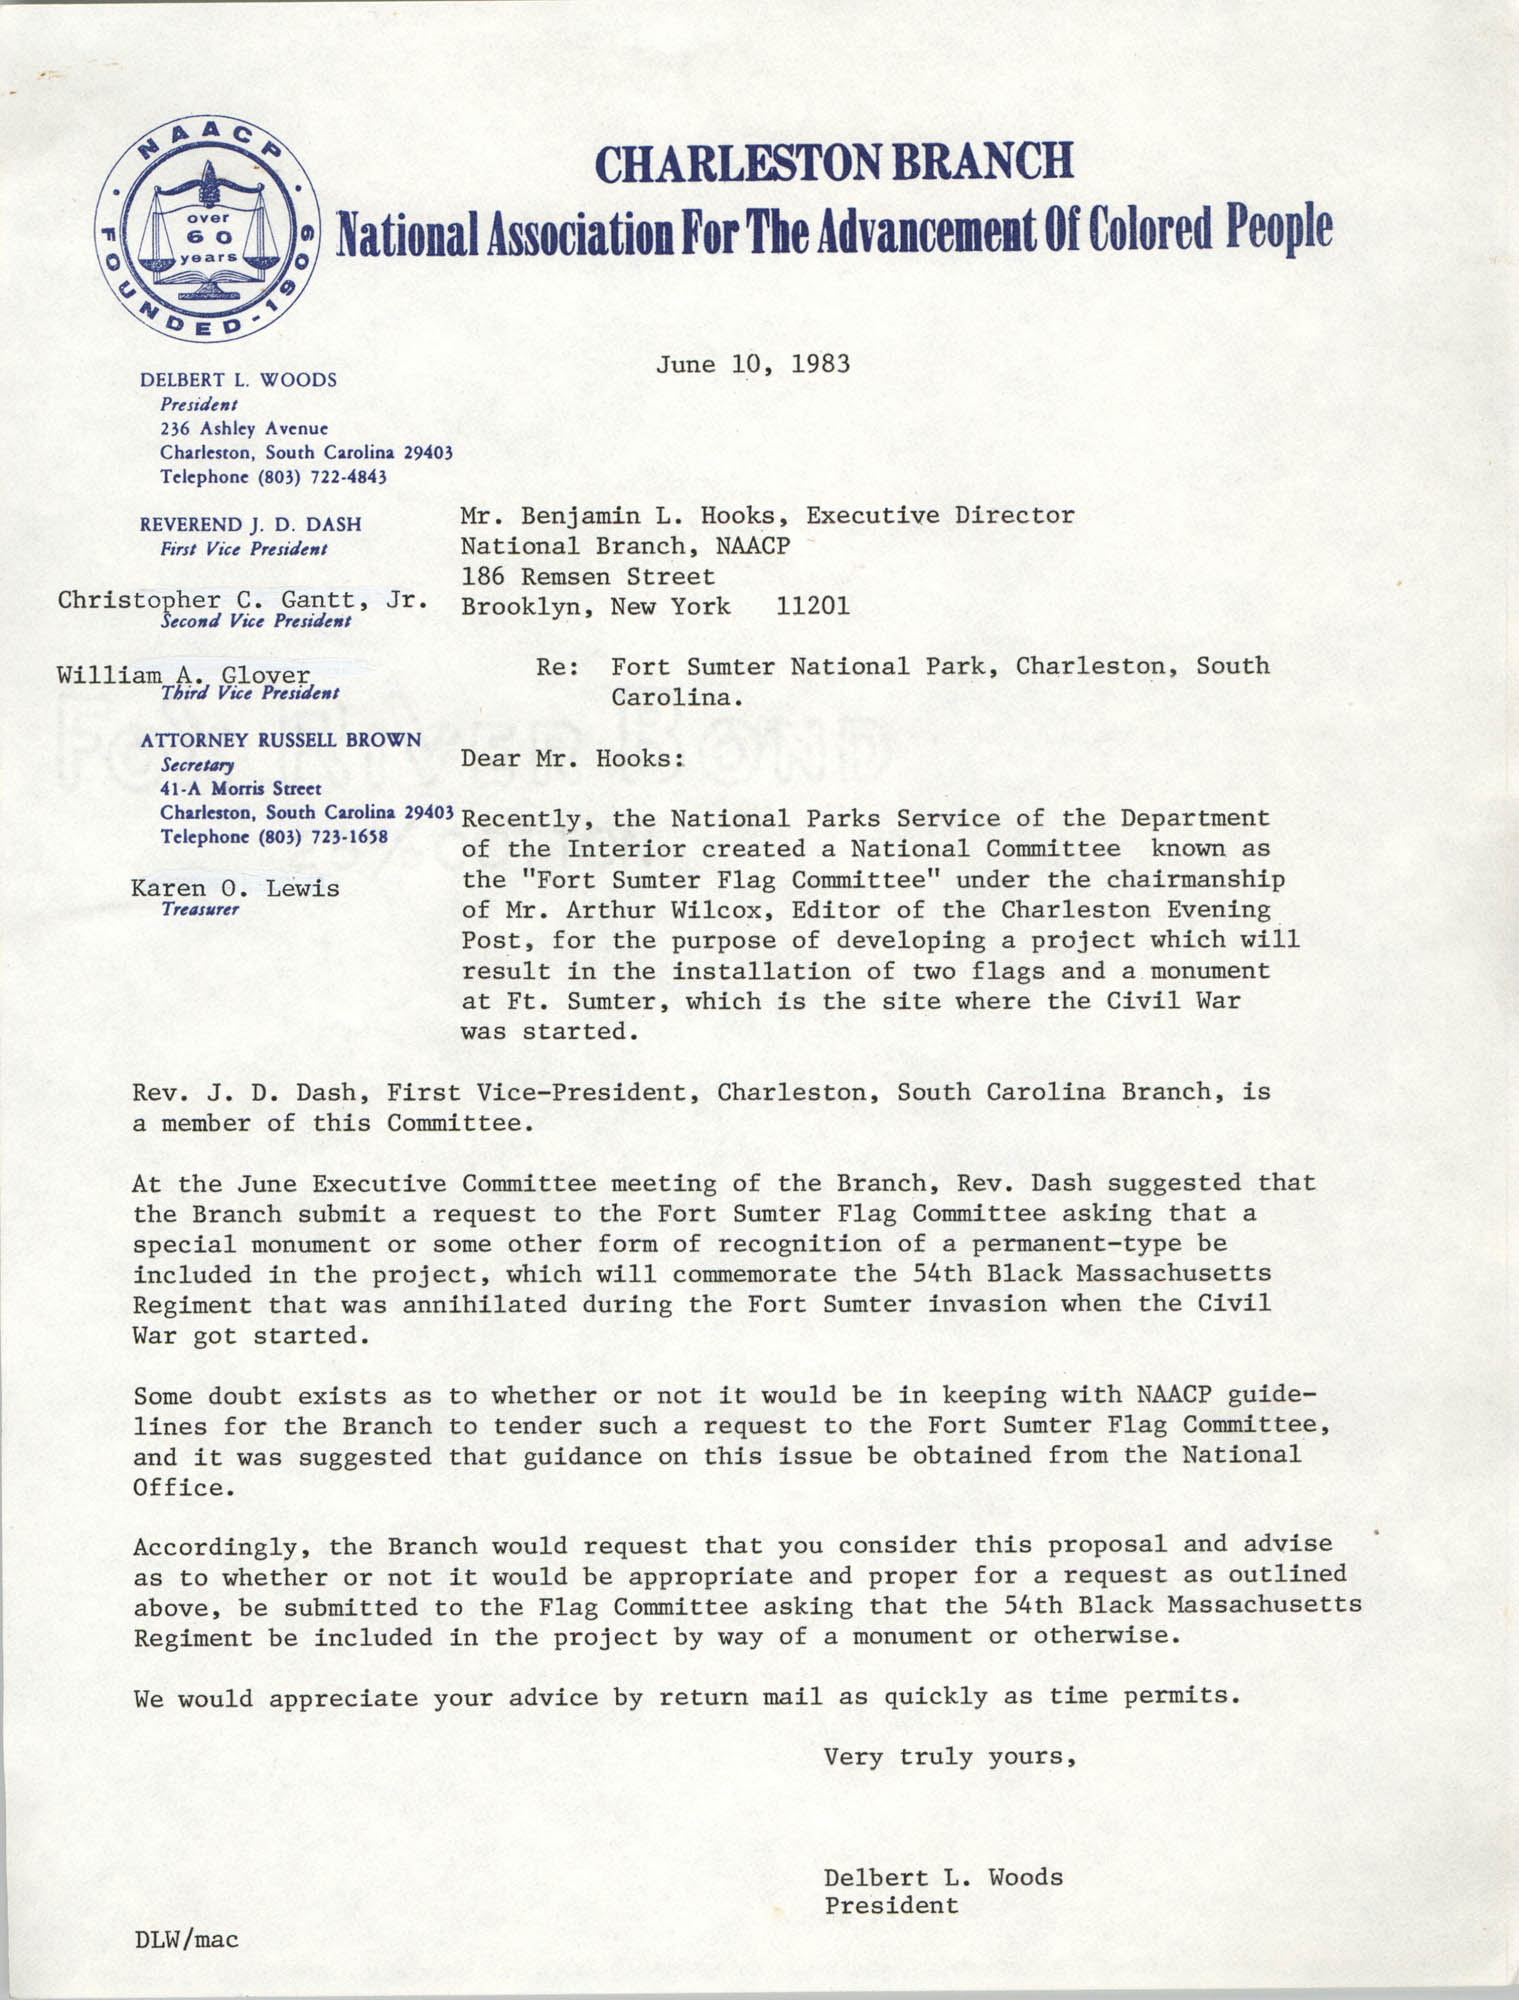 Letter from Delbert L. Woods to Benjamin L. Hooks, June 10, 1983